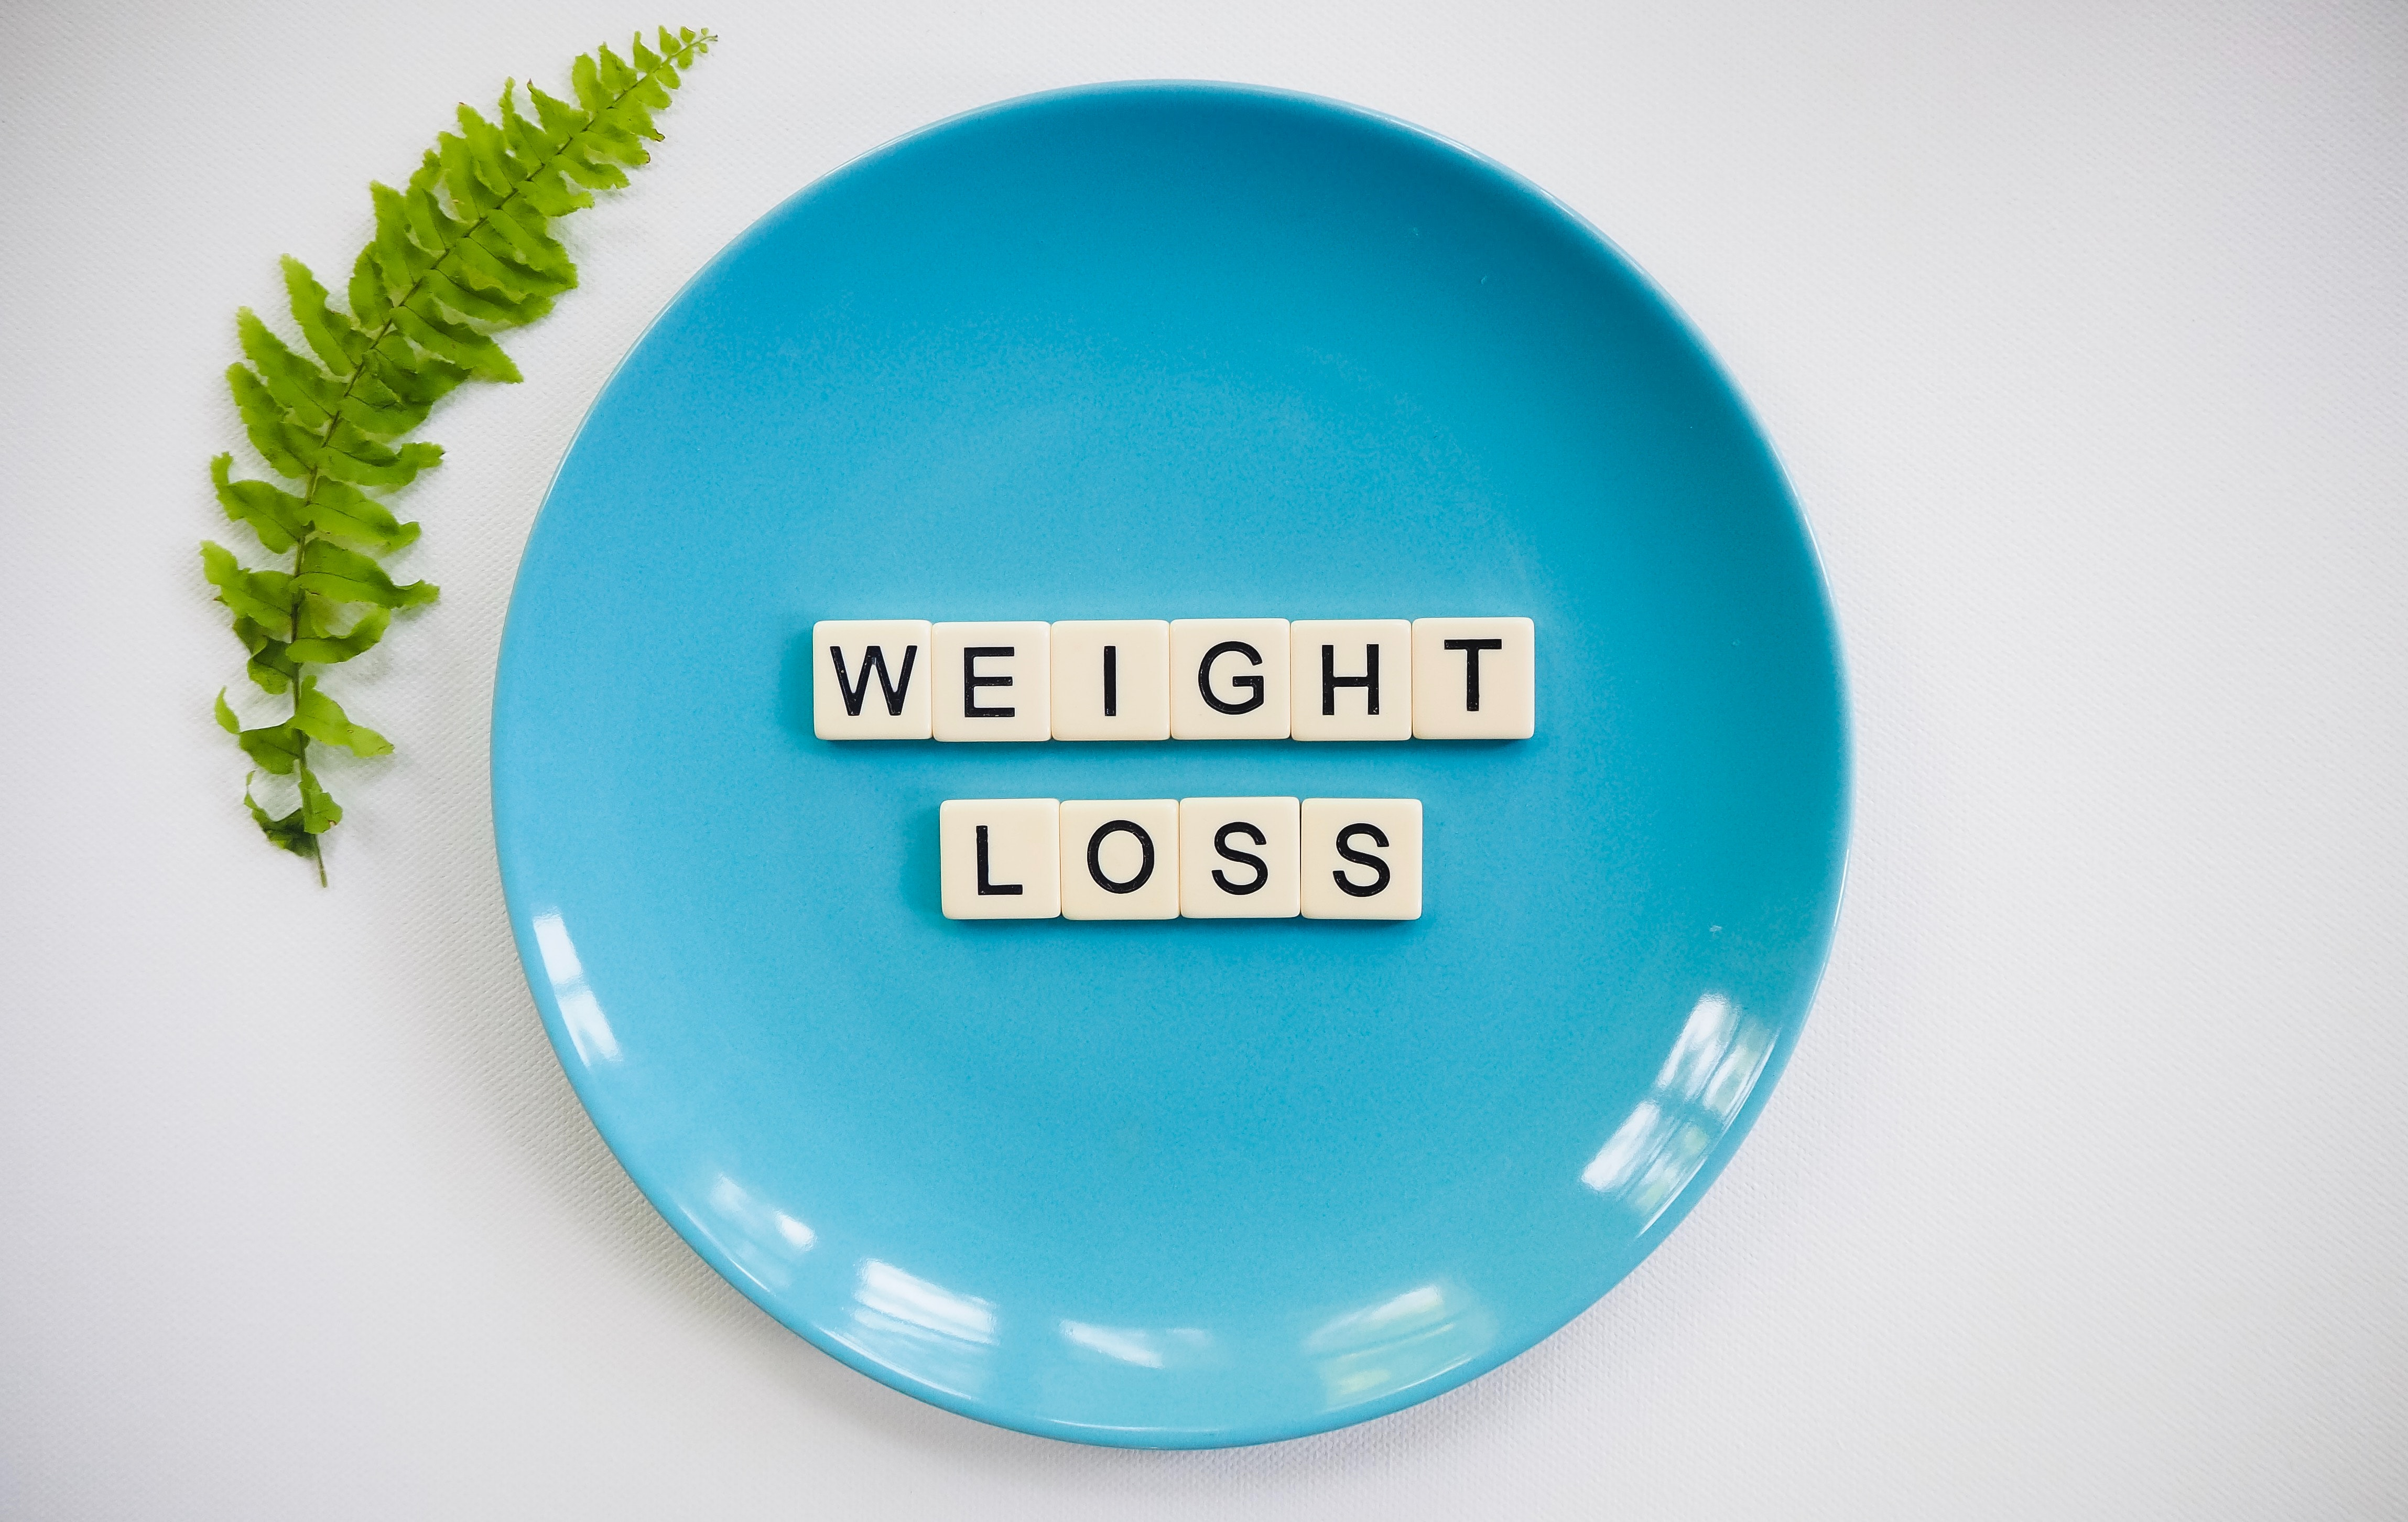 Does weight loss only depend on diet and exercise?